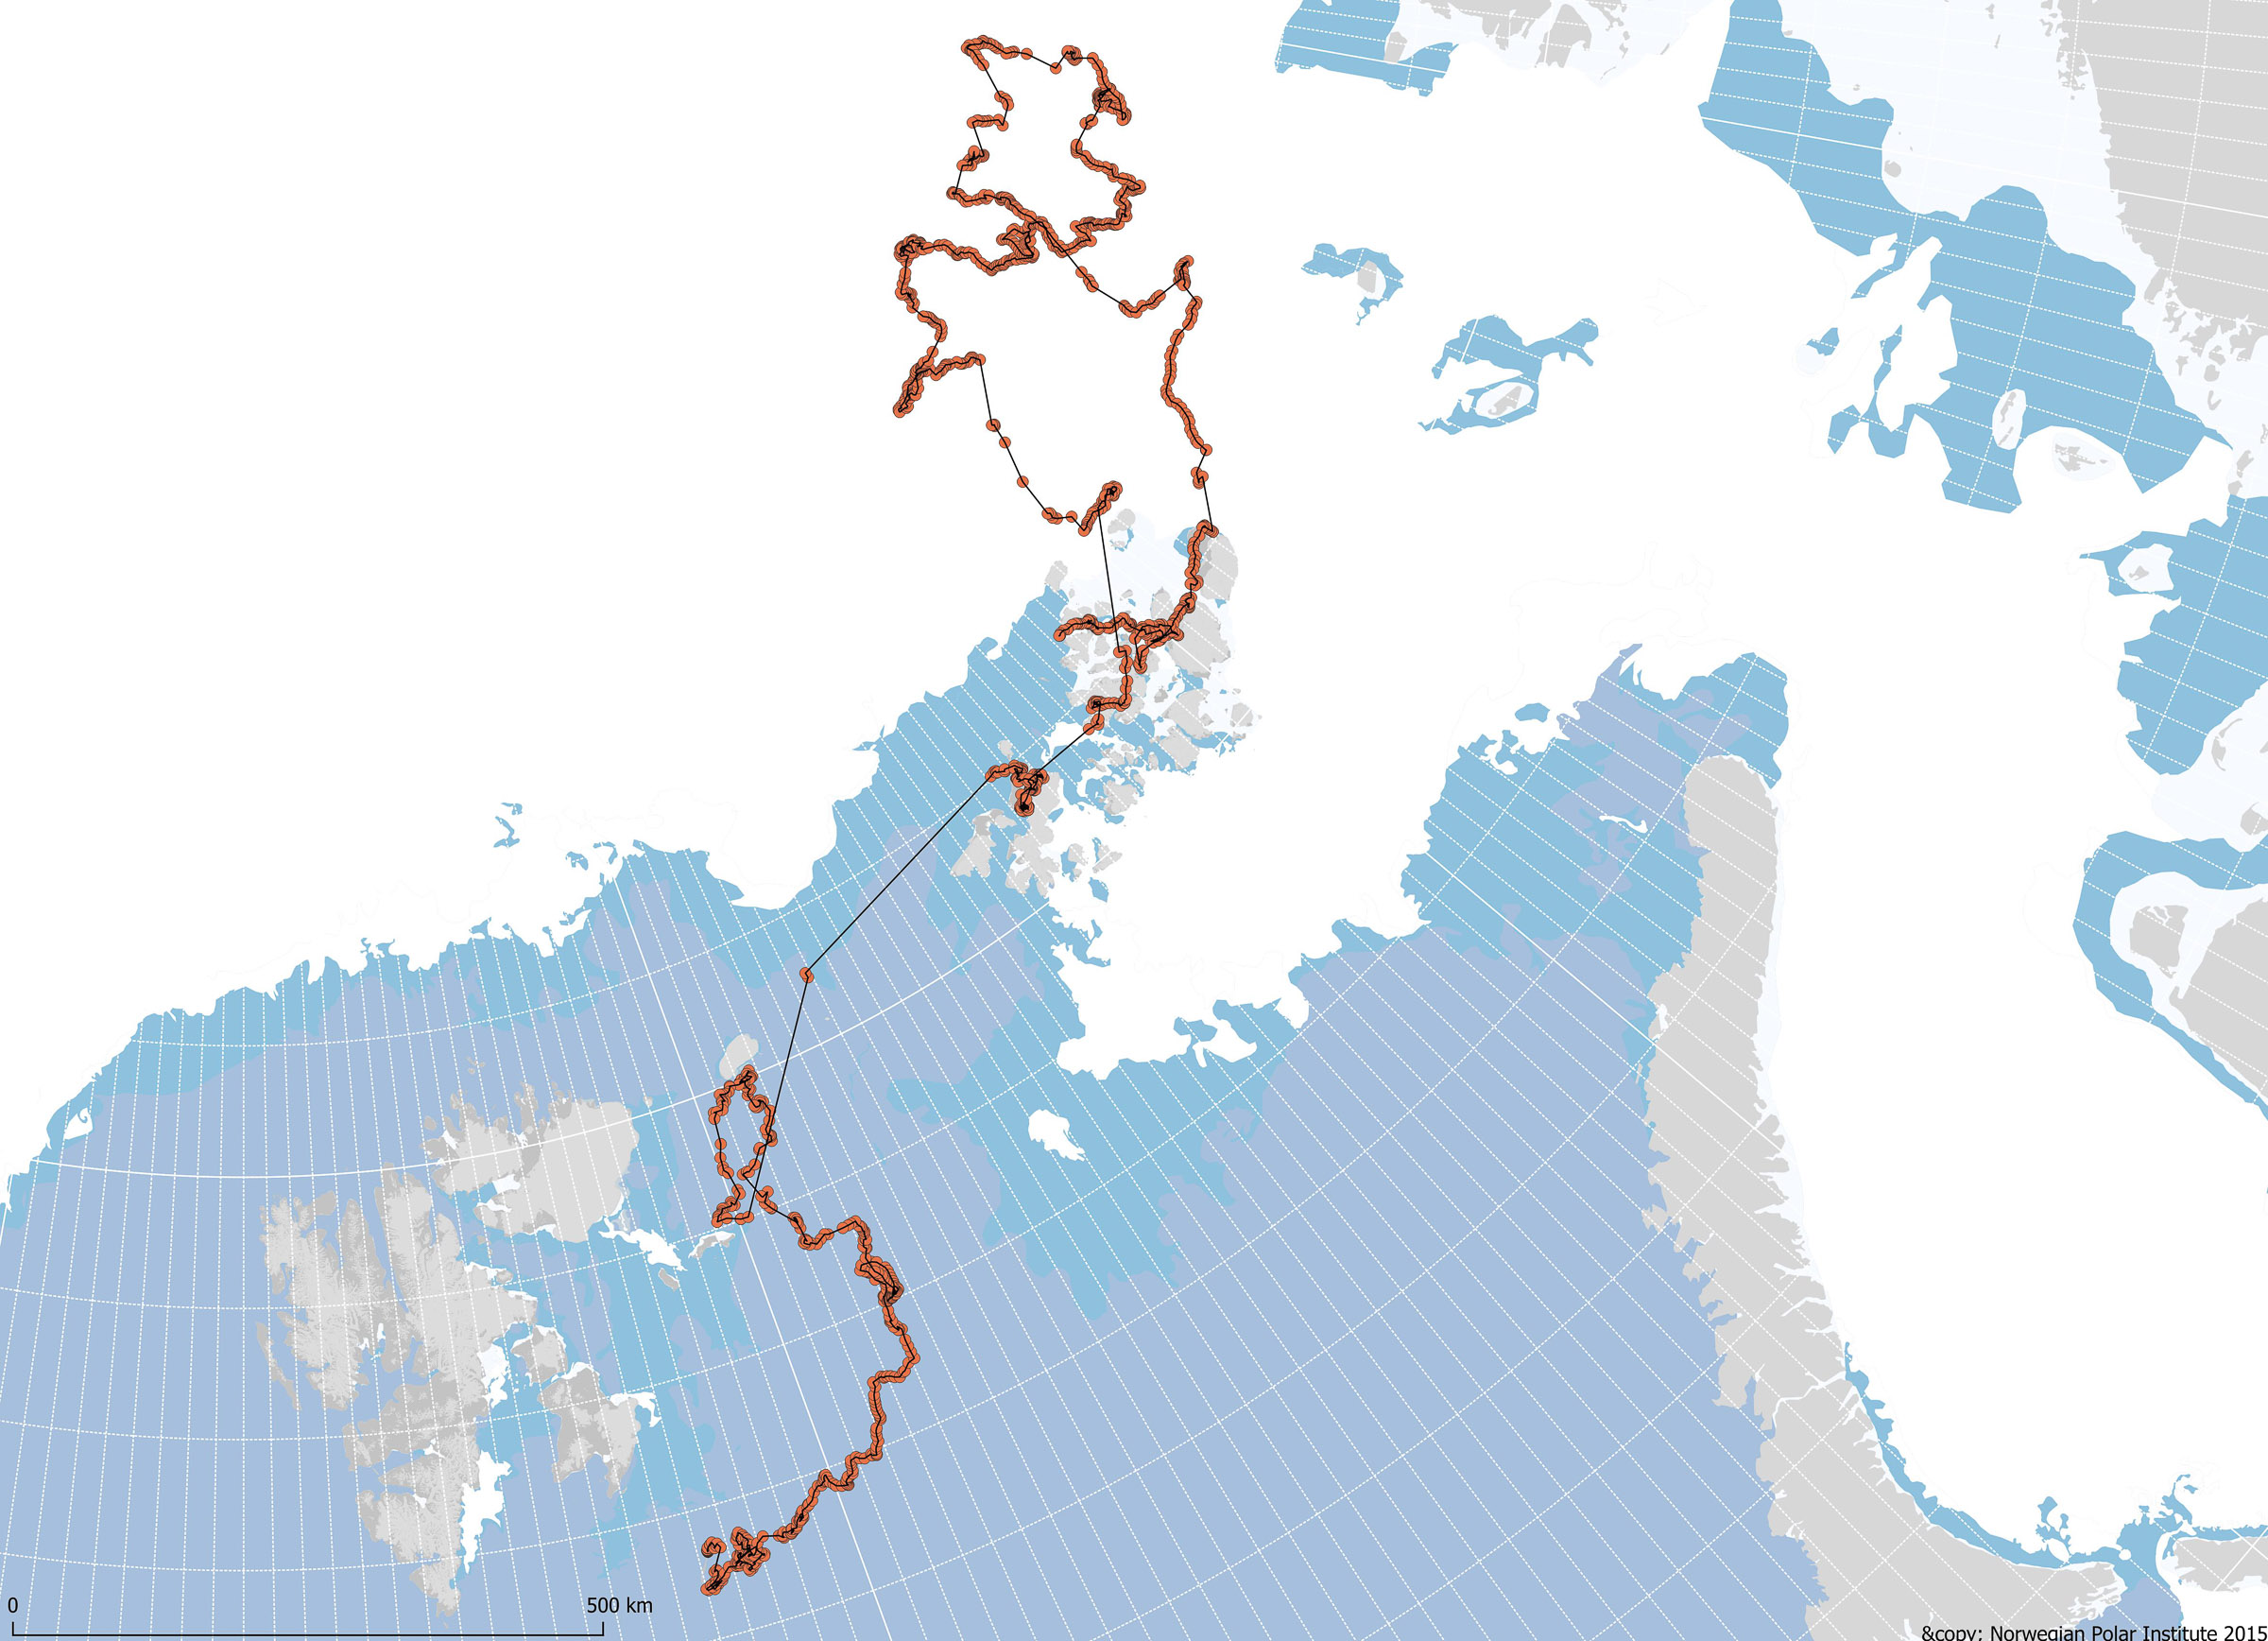 Track of a female polar bear with a GPS satellite collar. The straight lines show swimming. In June 2018 (for which sea ice distribution is shown) she swam more than 400 km during more than a week to get from eastern Svalbard to Franz Josef Land, stopping to rest for 20 hours on some sea ice.